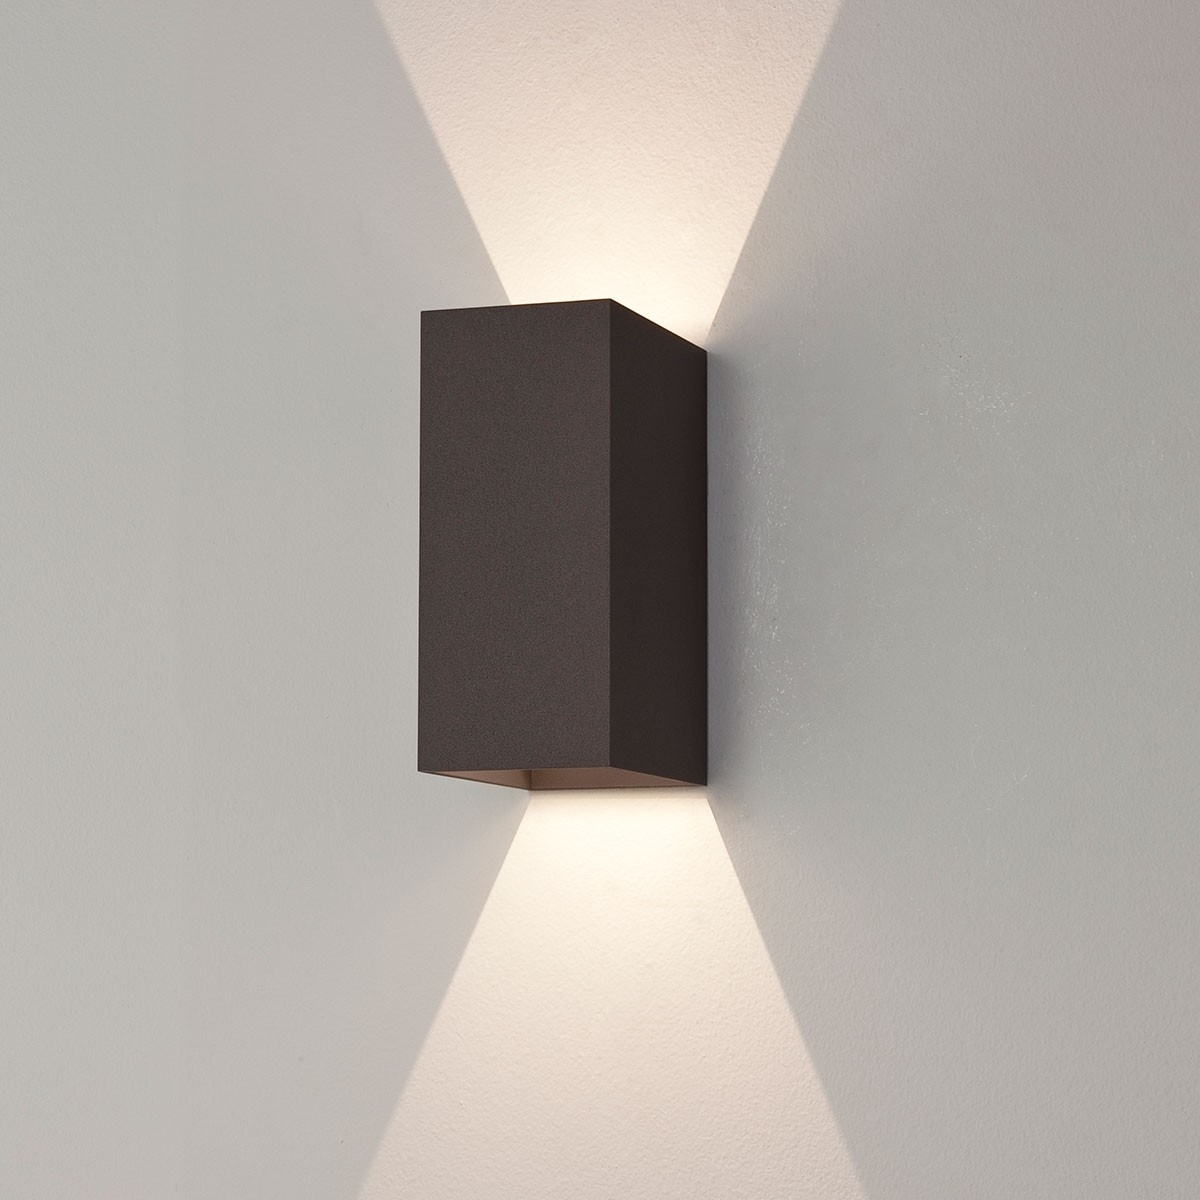 Trendy Outdoor Led Wall Lights – Outdoor Designs Intended For Black Outdoor Led Wall Lights (View 18 of 20)